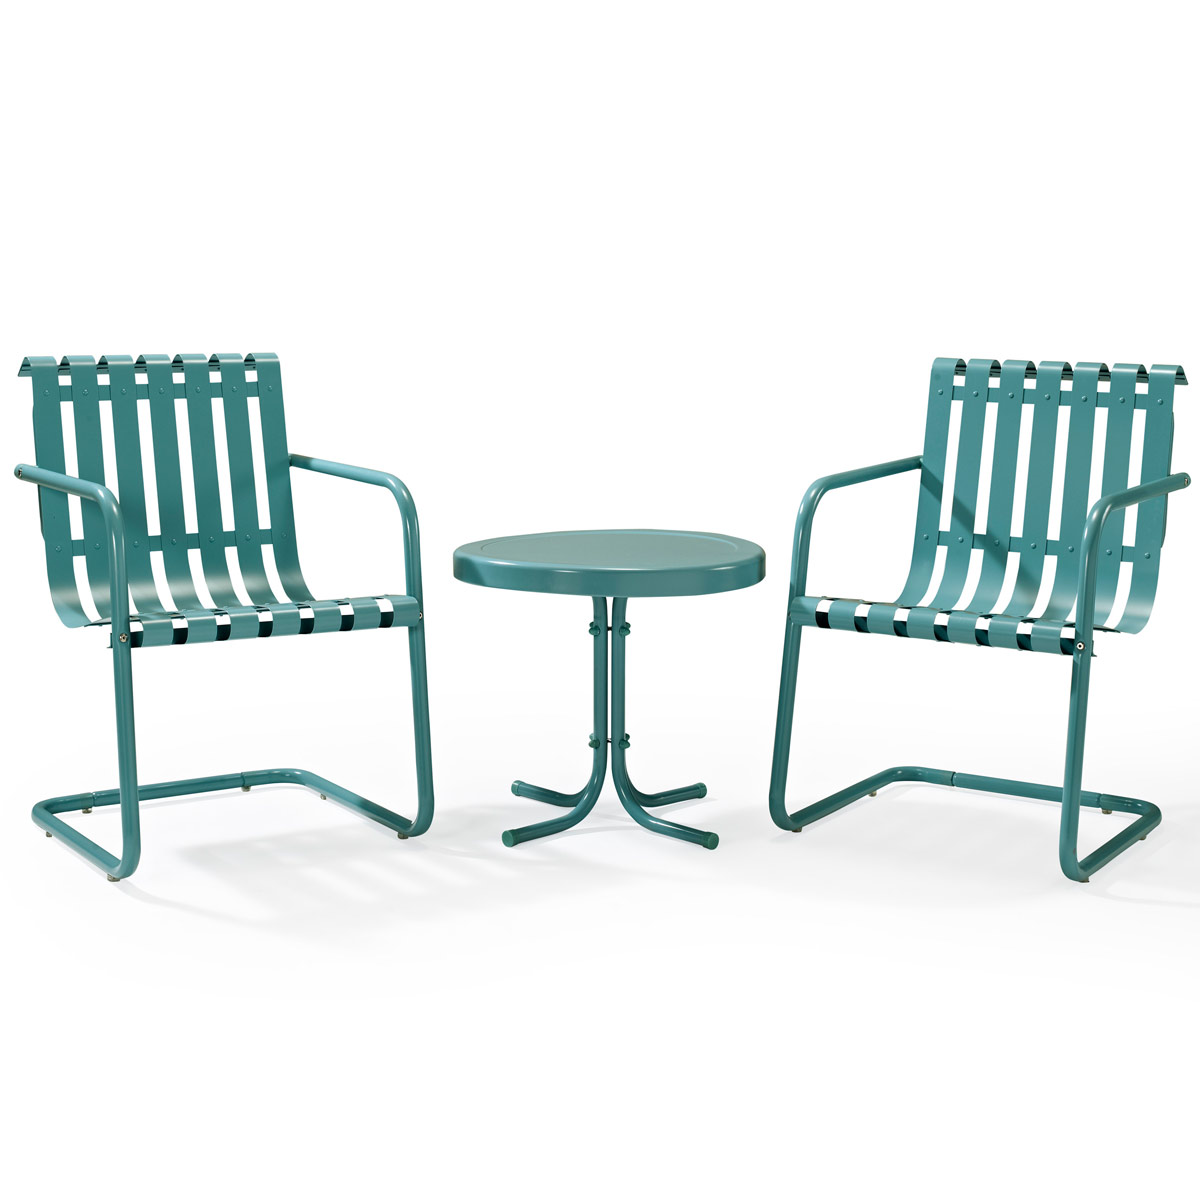 Crosley Gracie 3 Piece Metal Outdoor Conversation Seating Set   2 Chairs  And Side Table In Caribbean Blue